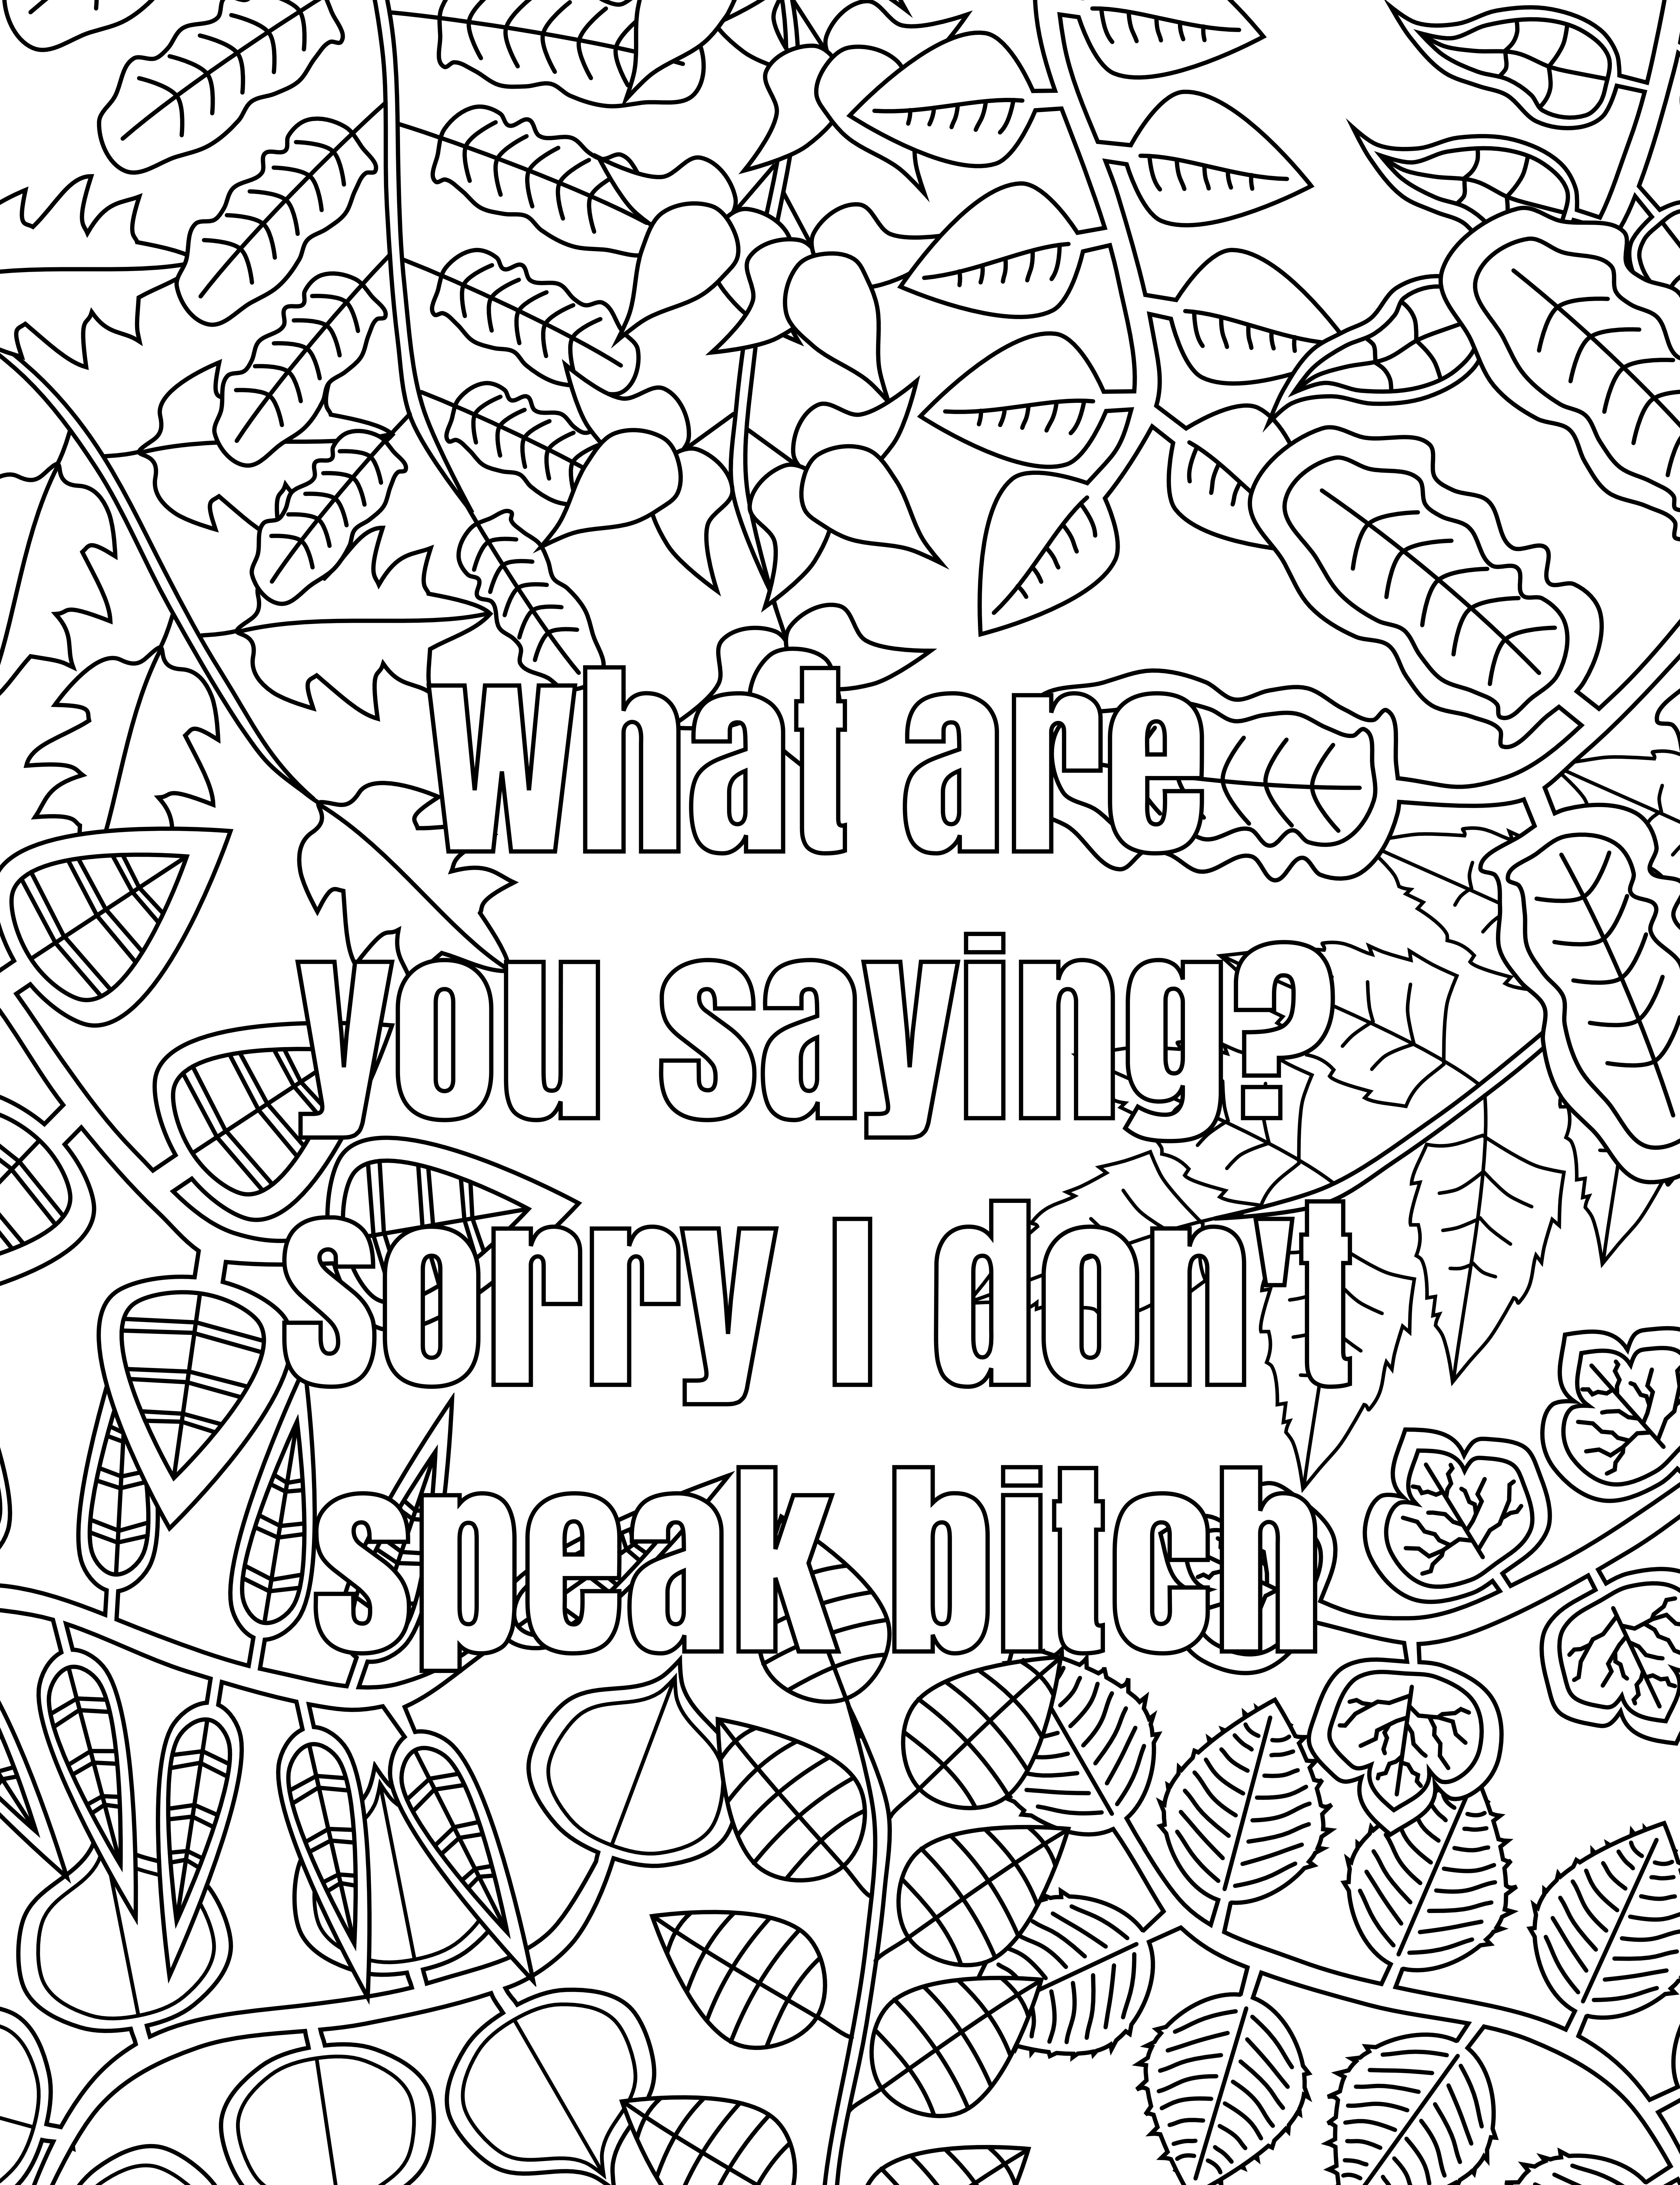 Free Printable Coloring Pages For Adults Only Swear Words Download - Free Printable Coloring Pages For Adults Only Swear Words